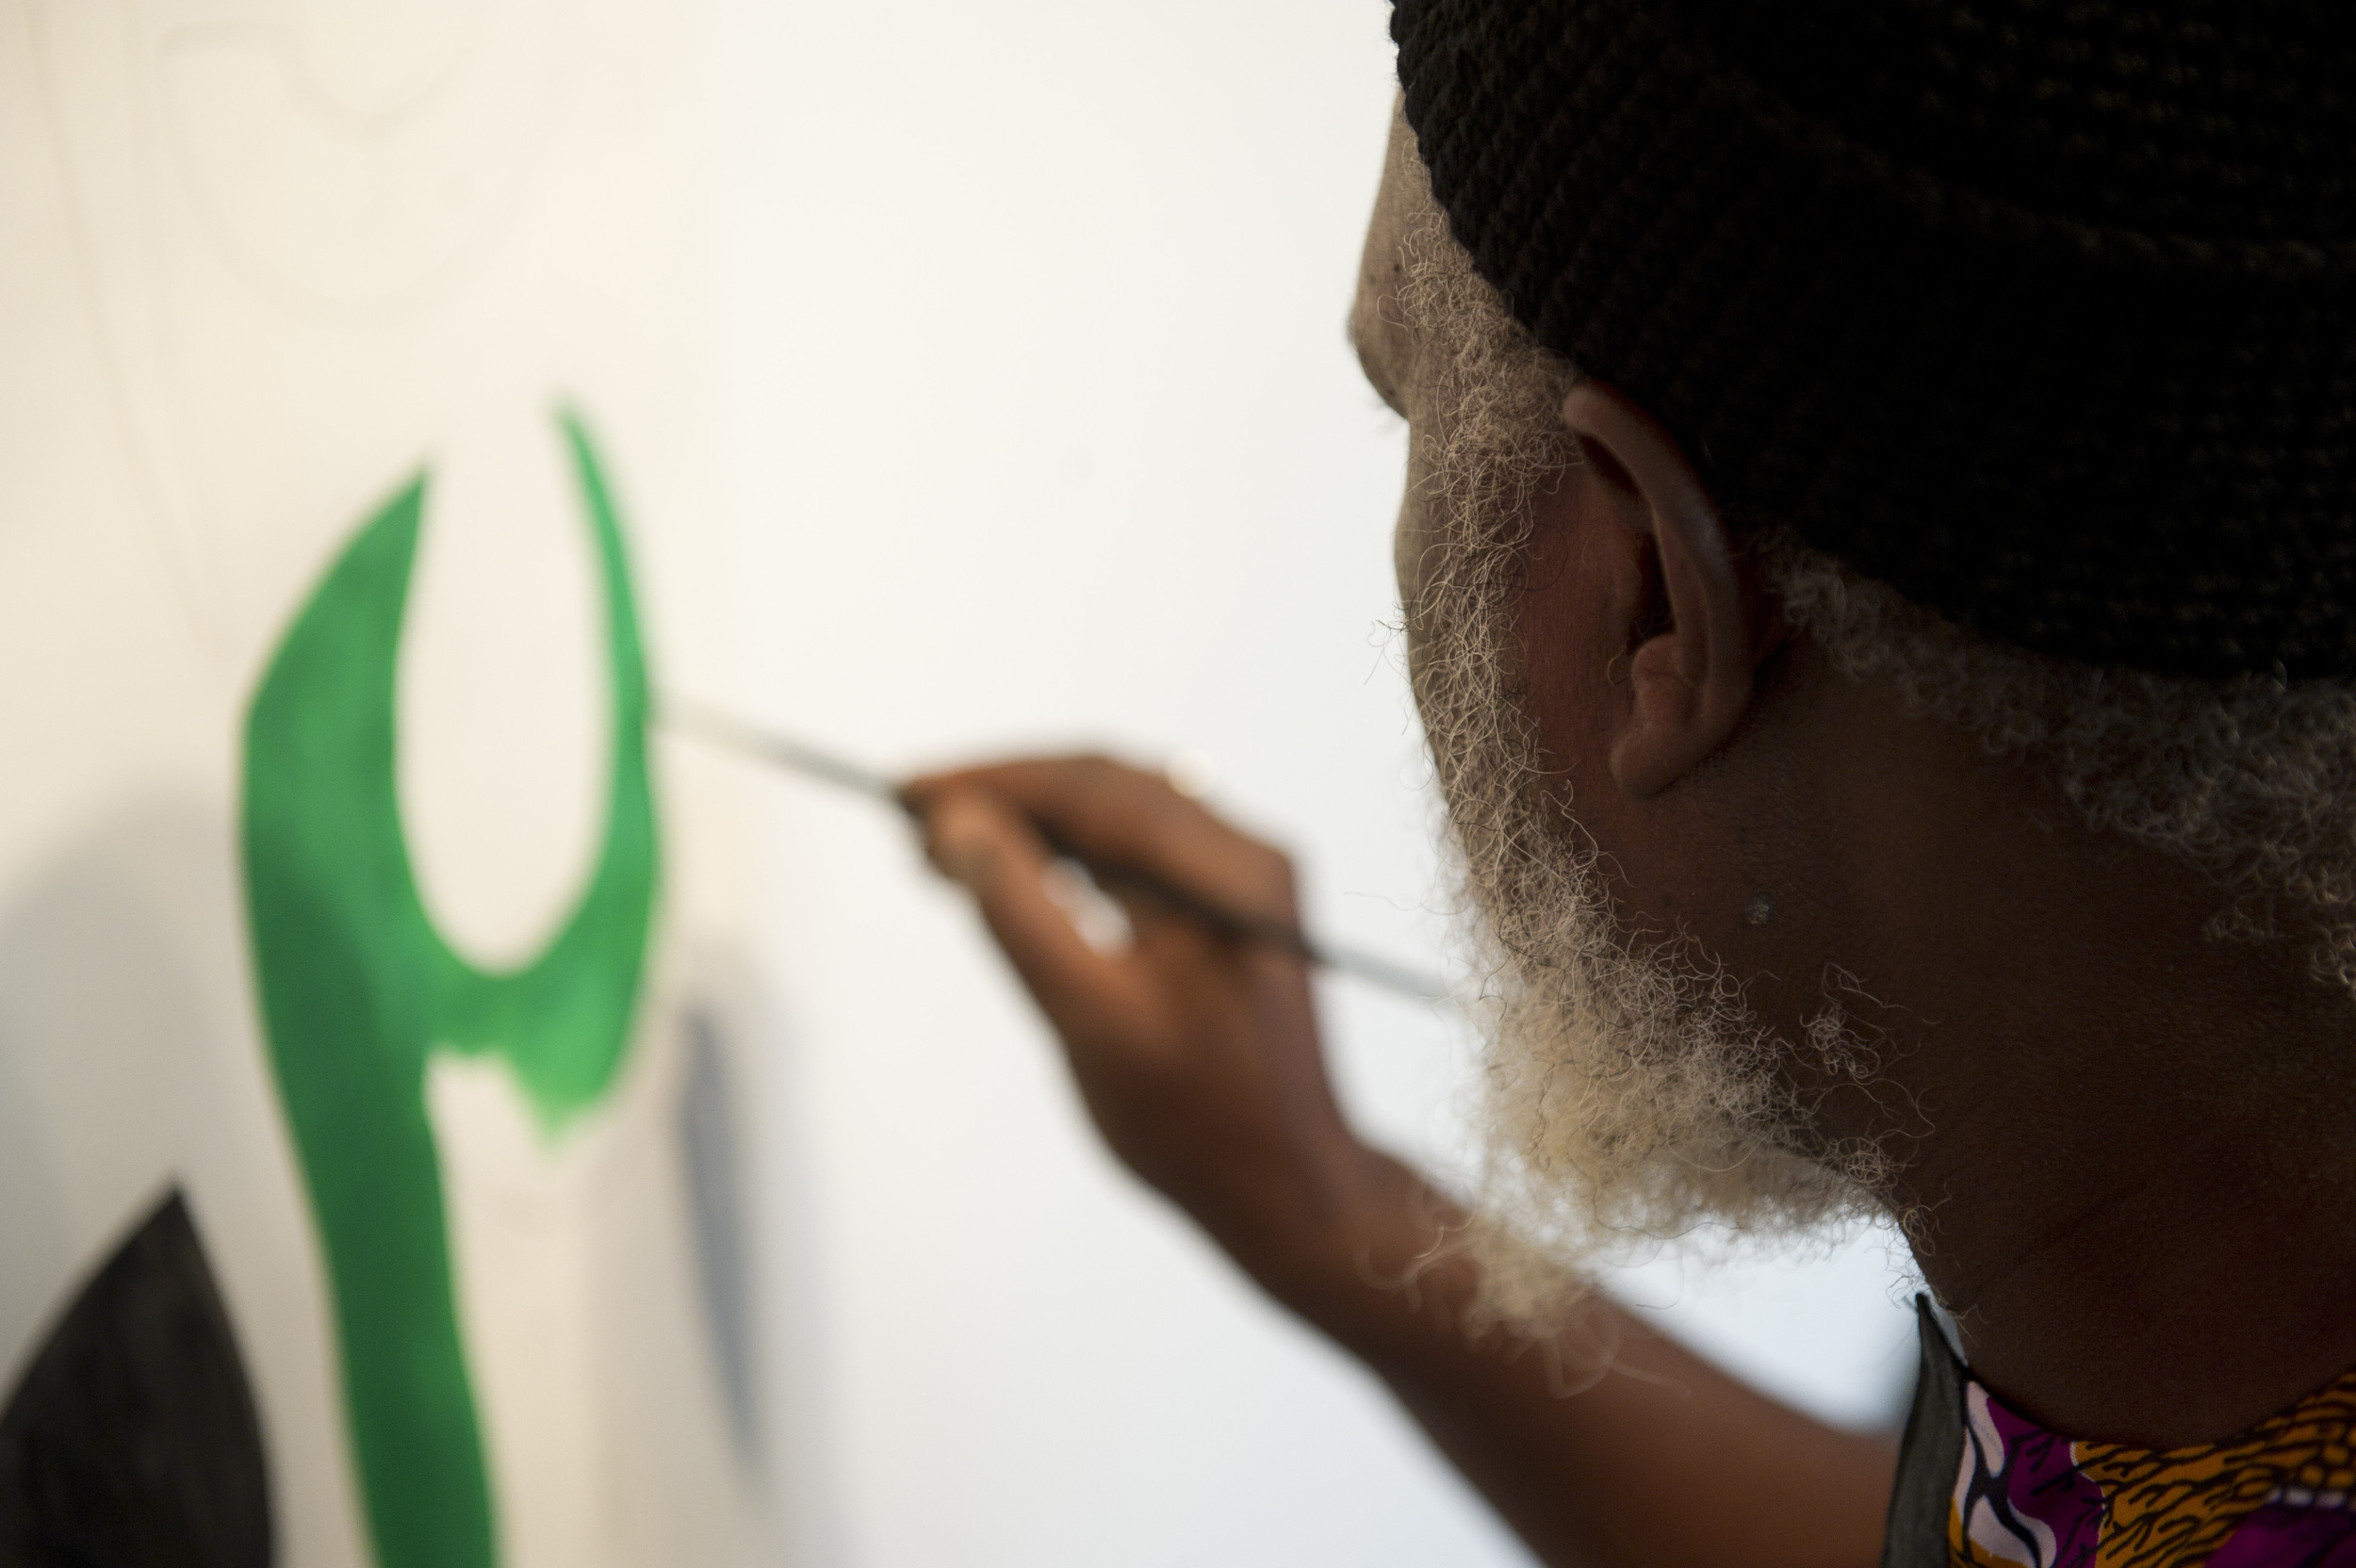 Artist Yelimane Fall of Senegal works on the beginnings of a mural while the rest of his work is installed for an exhibit in the GSU Gallery, November 9, 2011. Photo by Cydney Scott for Boston University Photography